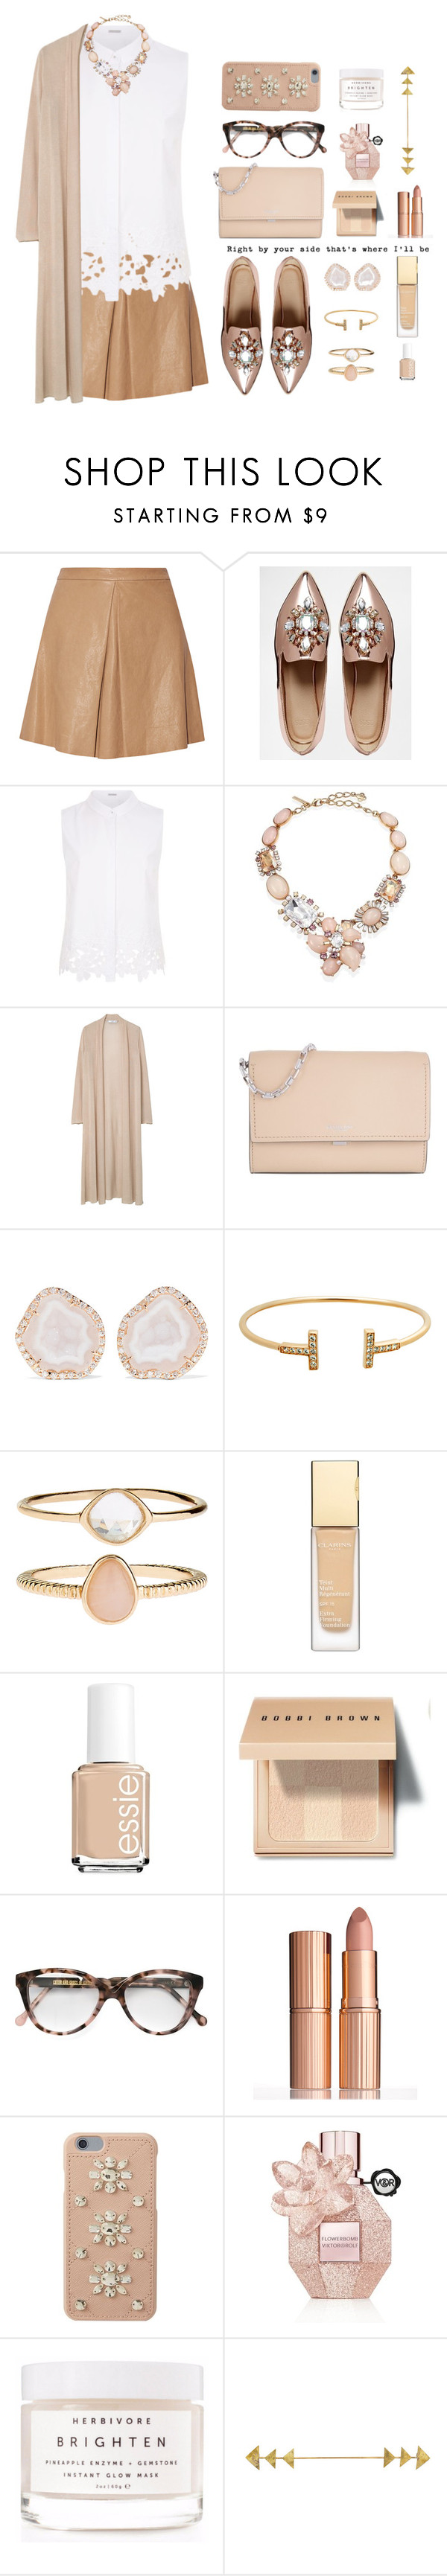 """""""by your side."""" by jafashions ❤ liked on Polyvore featuring Alice + Olivia, ASOS, Elie Tahari, Oscar de la Renta, MANGO, Michael Kors, Kimberly McDonald, Accessorize, Clarins and Essie"""